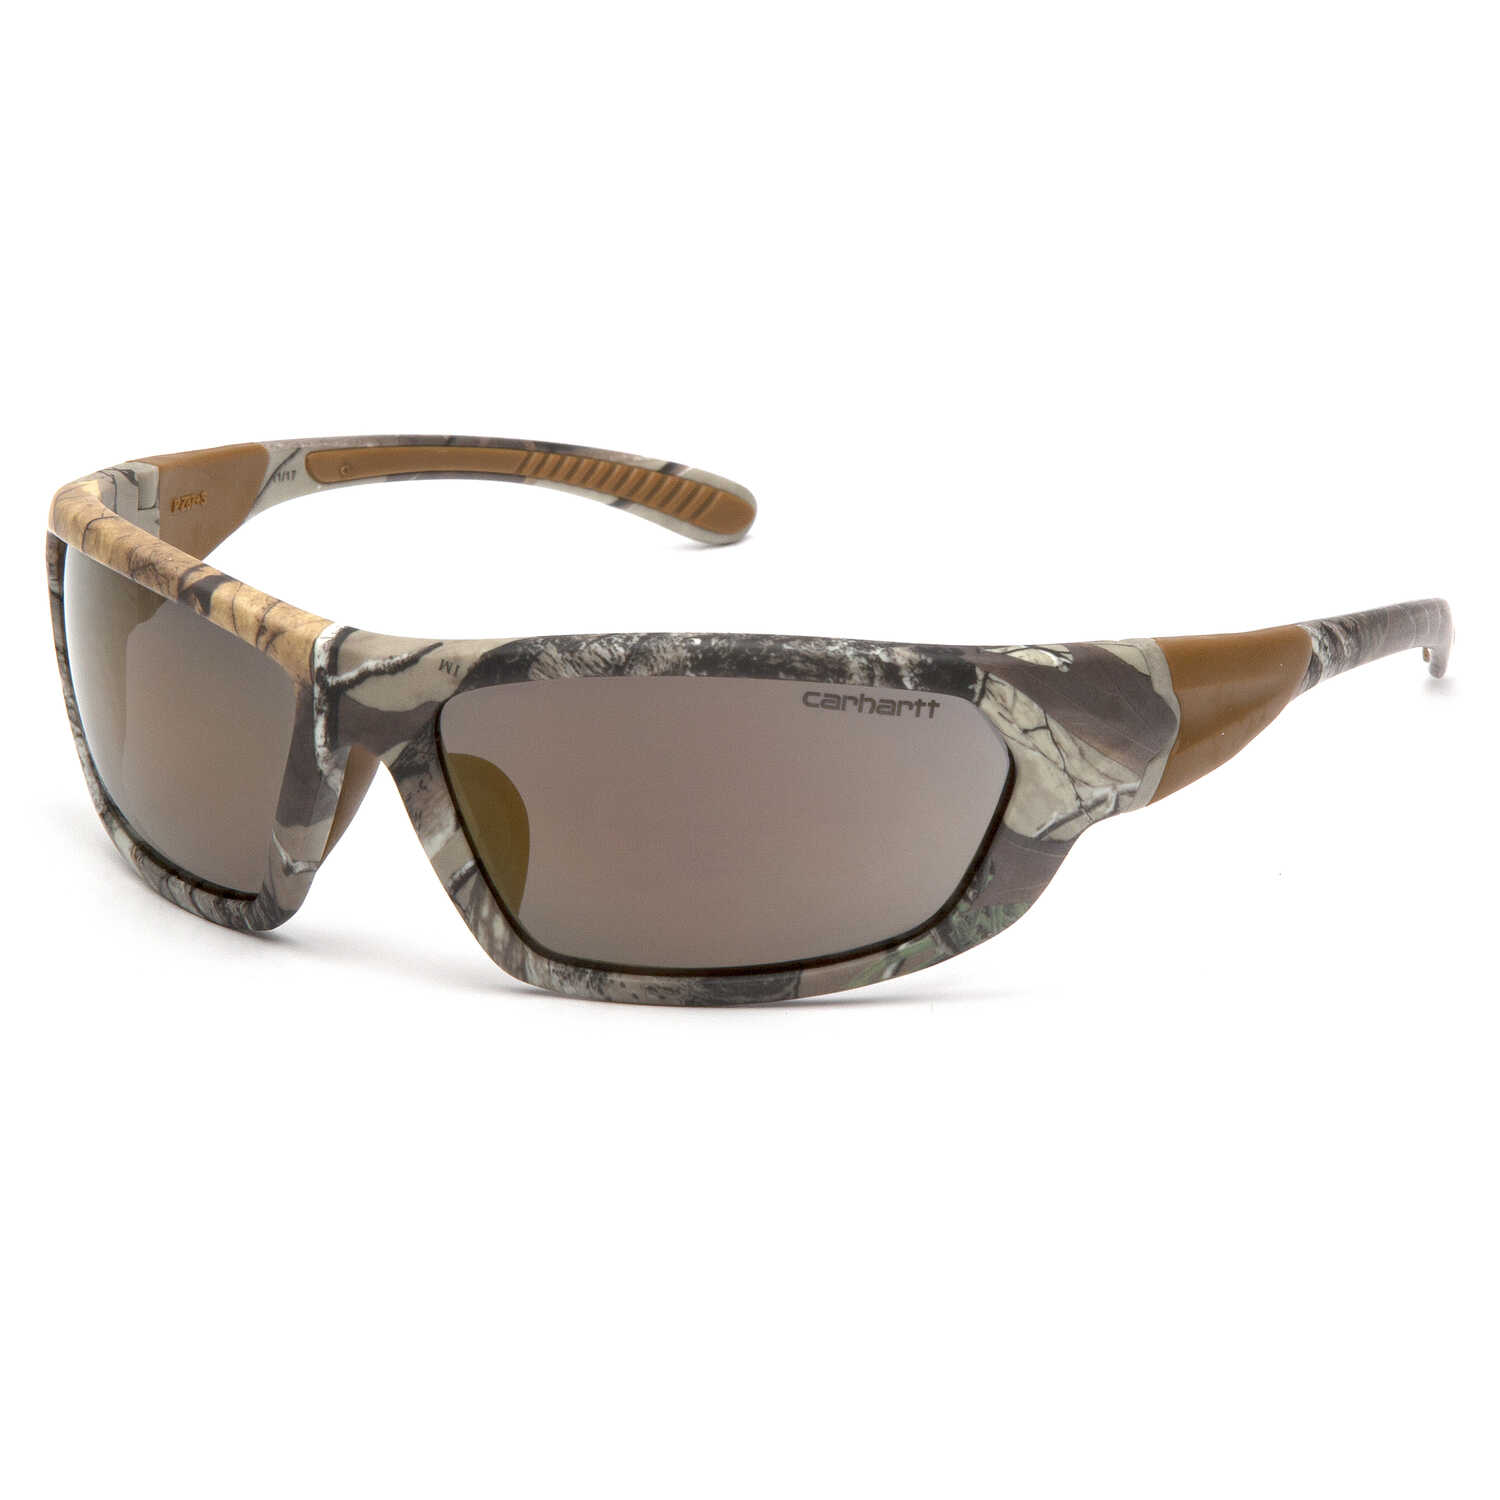 Carhartt  Carbondale  Anti-Fog Safety Glasses  Antique Mirror Lens Realtree Camo Frame 1 pc.